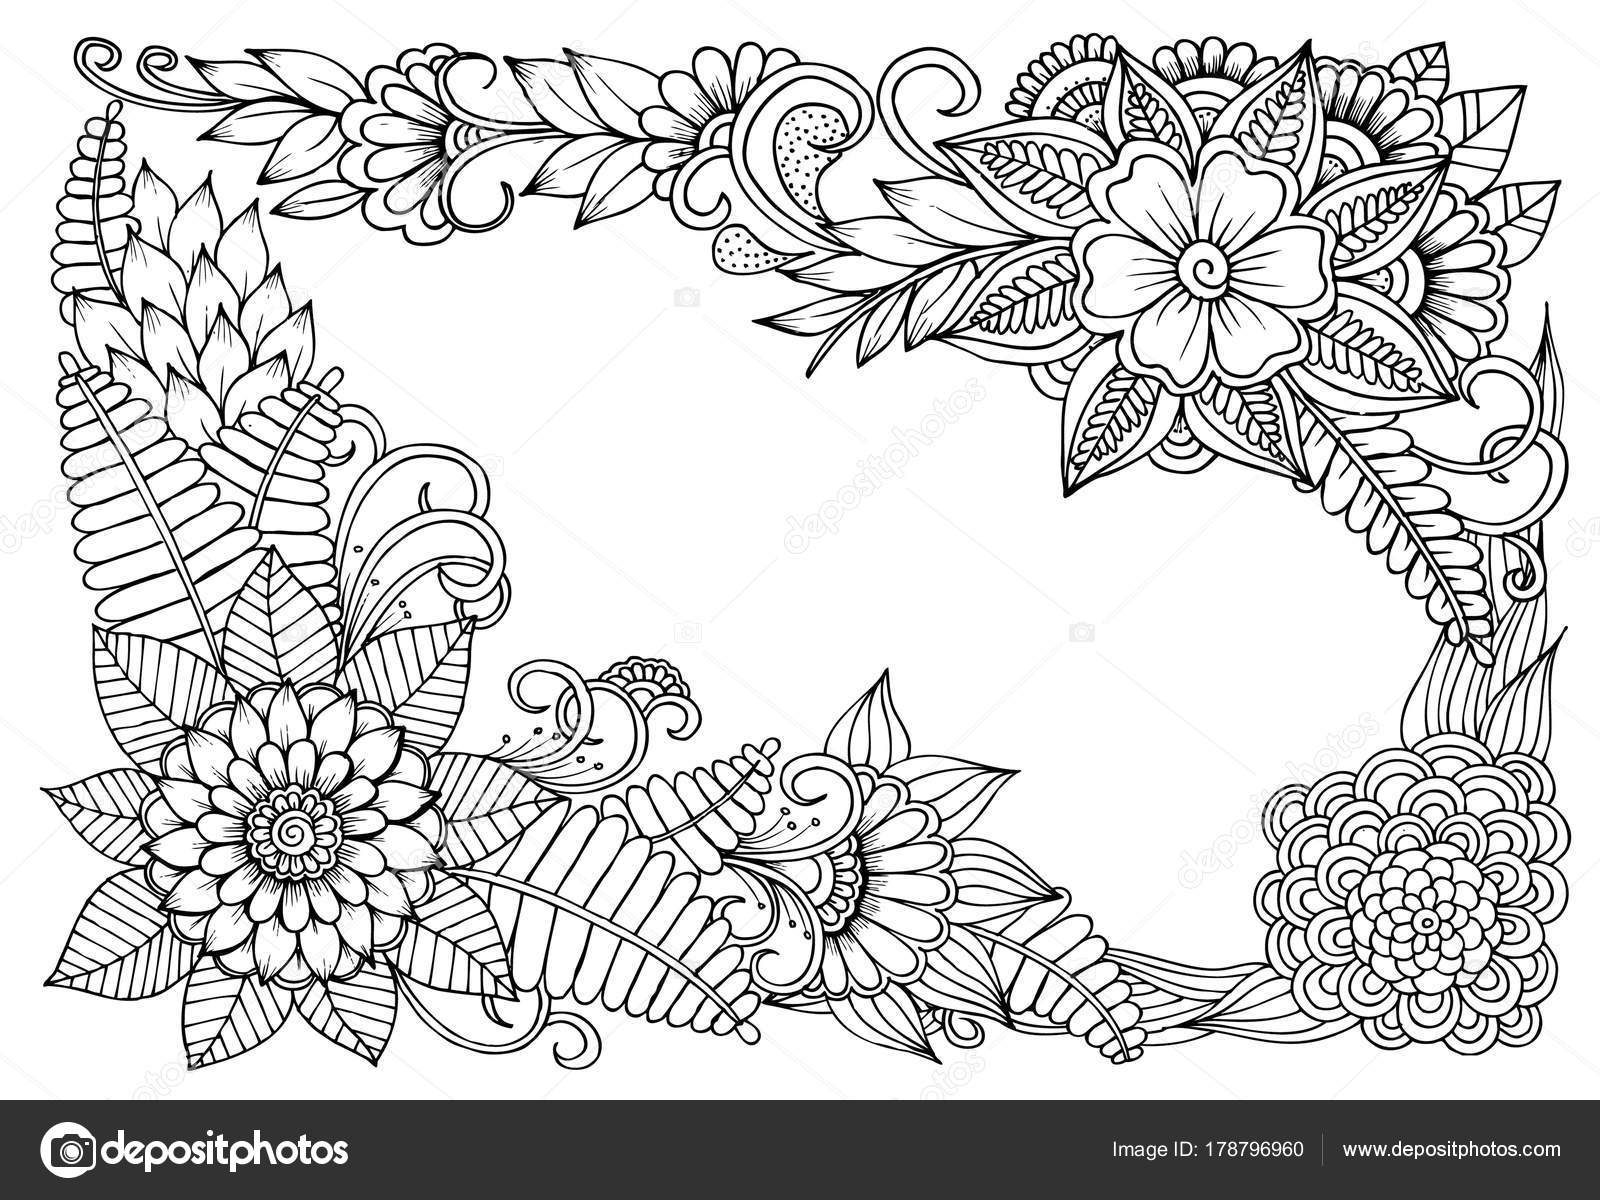 Vector Floral Frame In Black And White Can Use For Coloring And